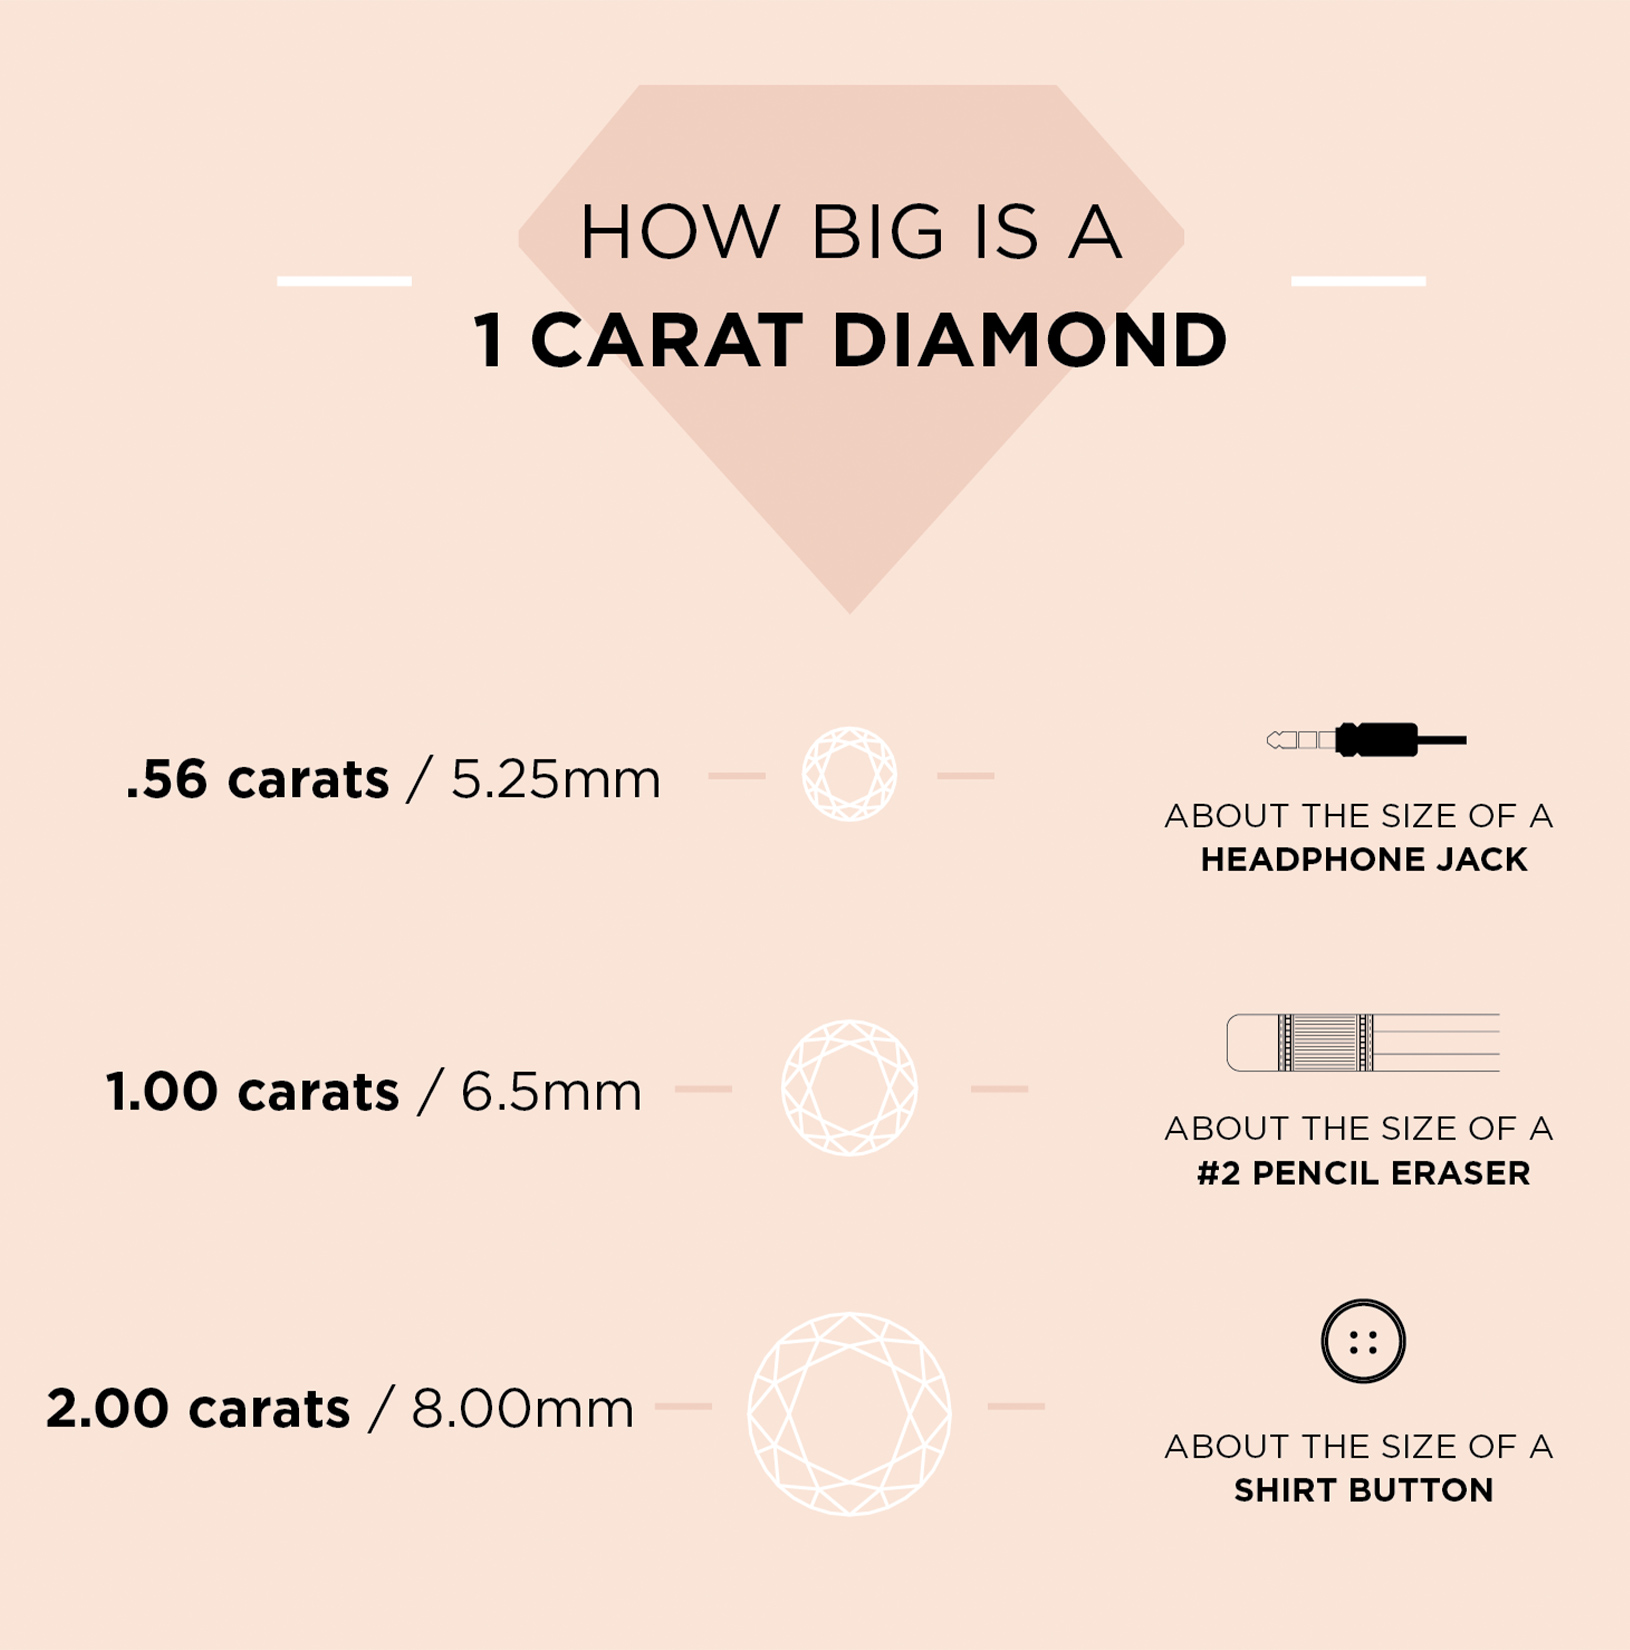 Infographic explaining how big a 1 carat diamond is